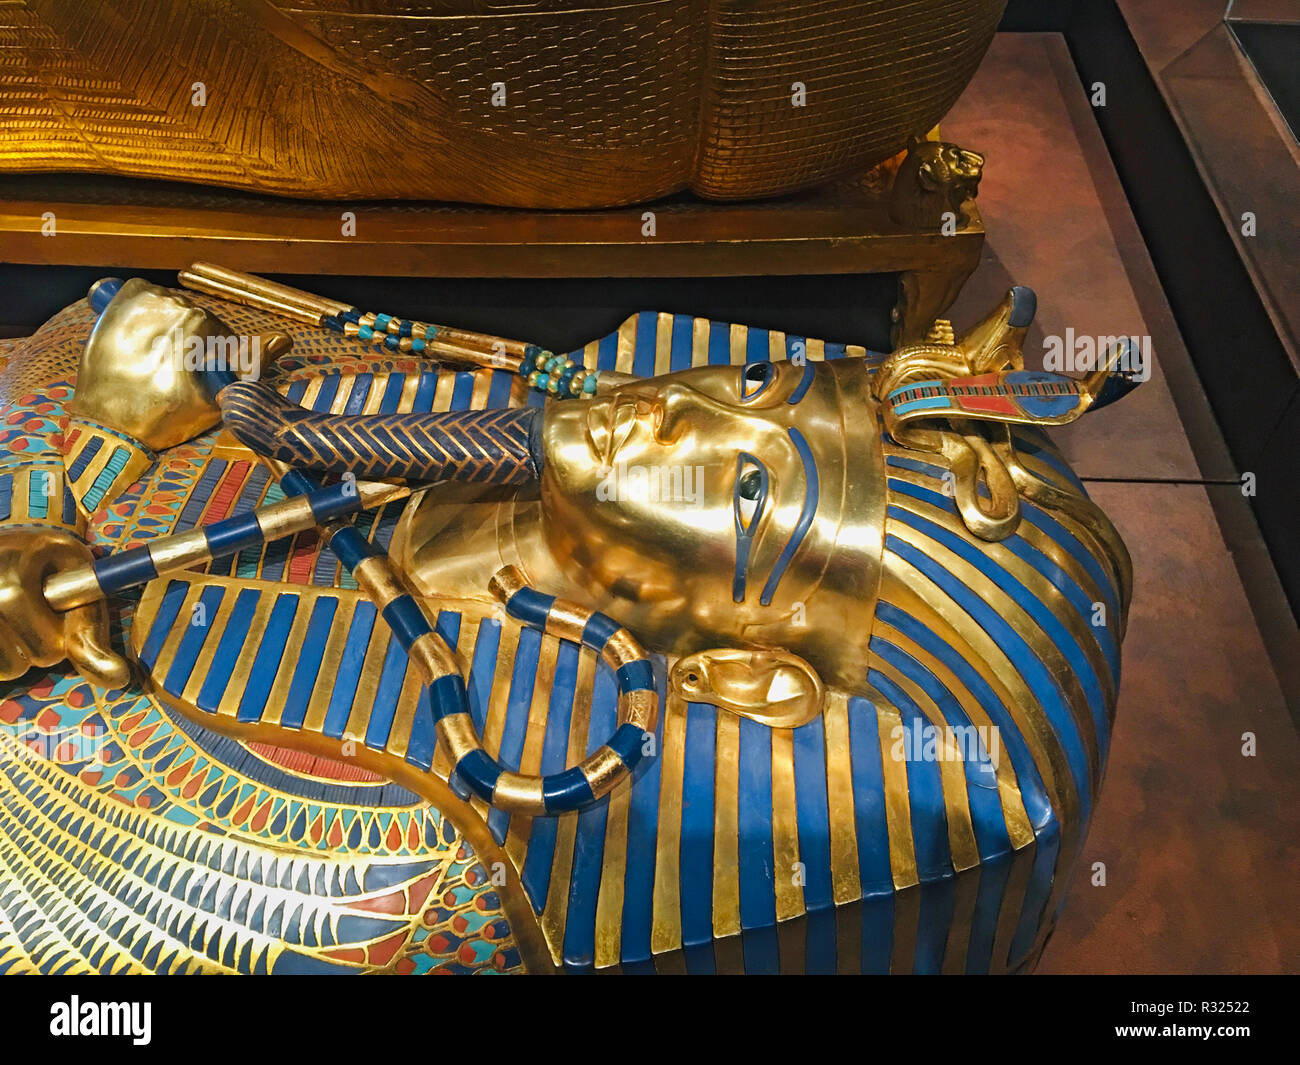 The gold, inner Sarcoghagus in the casket of King Tutankhamun, found in his tomb in the Valley of the Kings, Egypt. - Stock Image